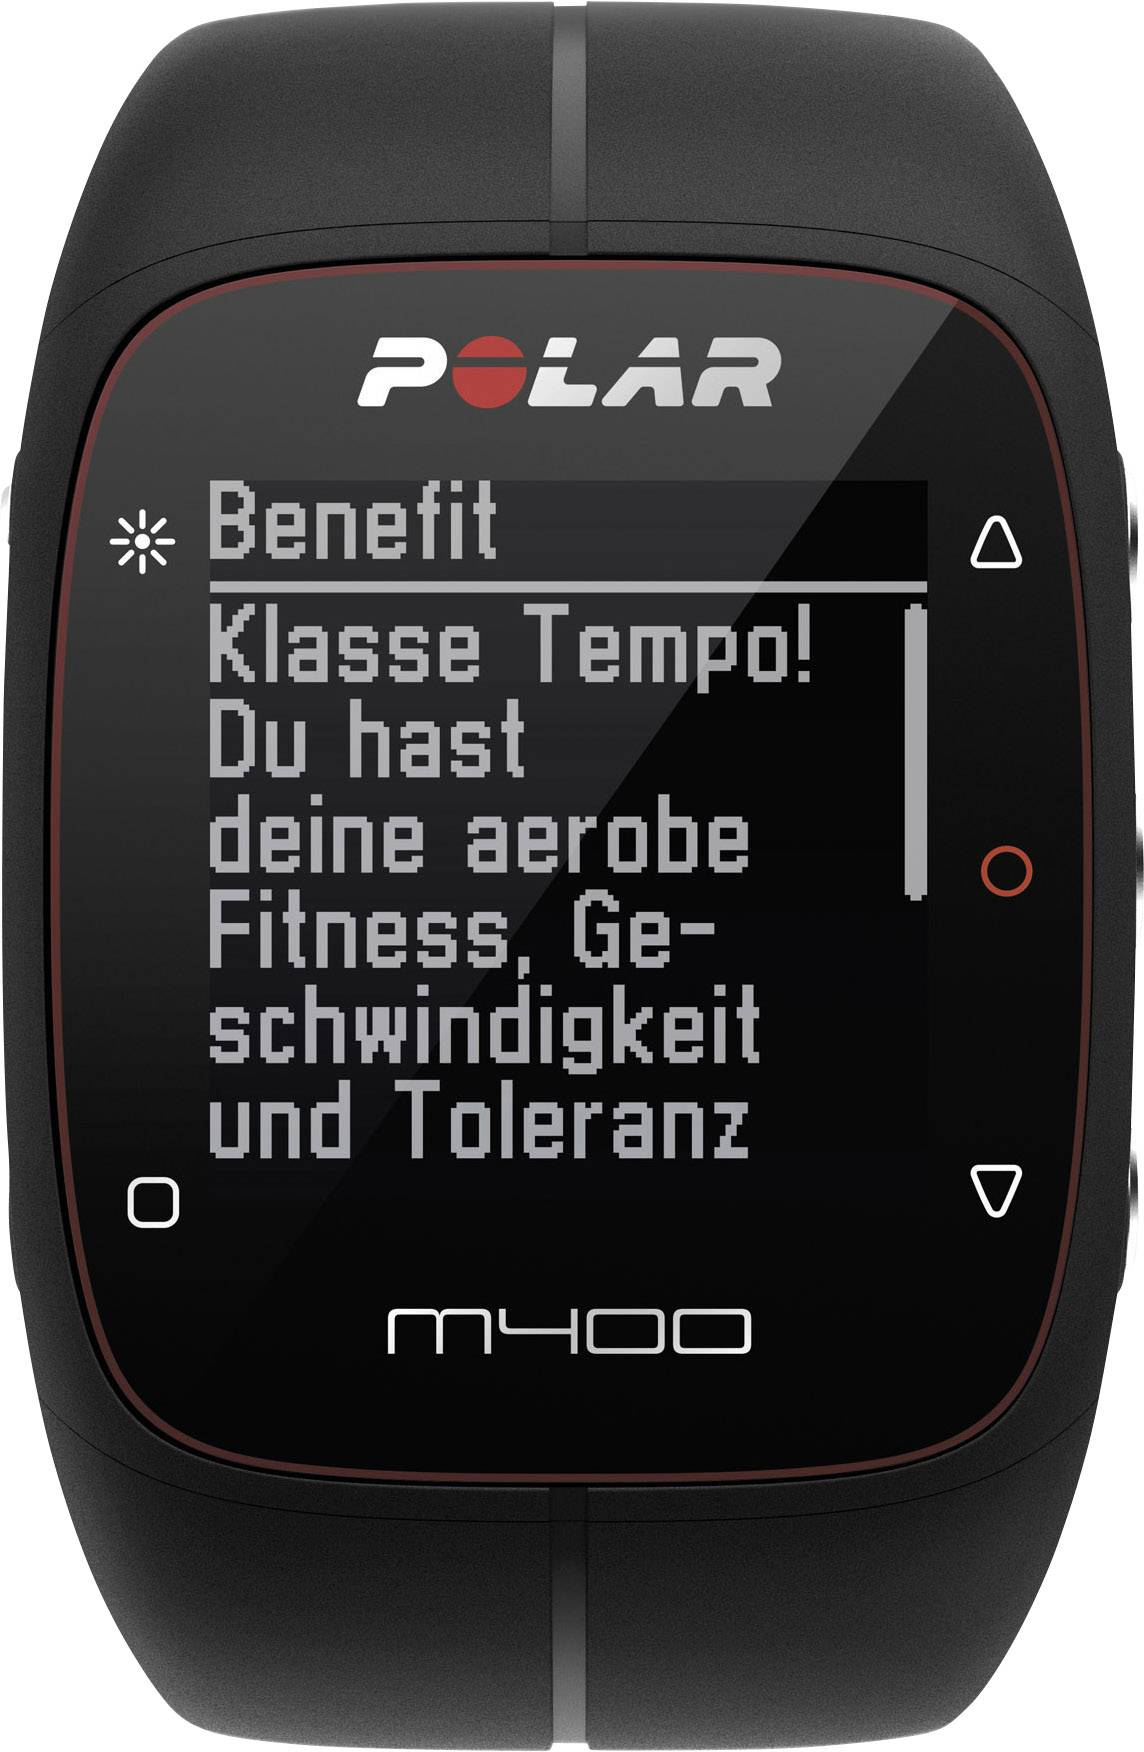 Polar h7 manual ebook polar h7 and beets blu array gps heart rate monitor watch with chest strap polar m400 hr black rh conrad fandeluxe Gallery